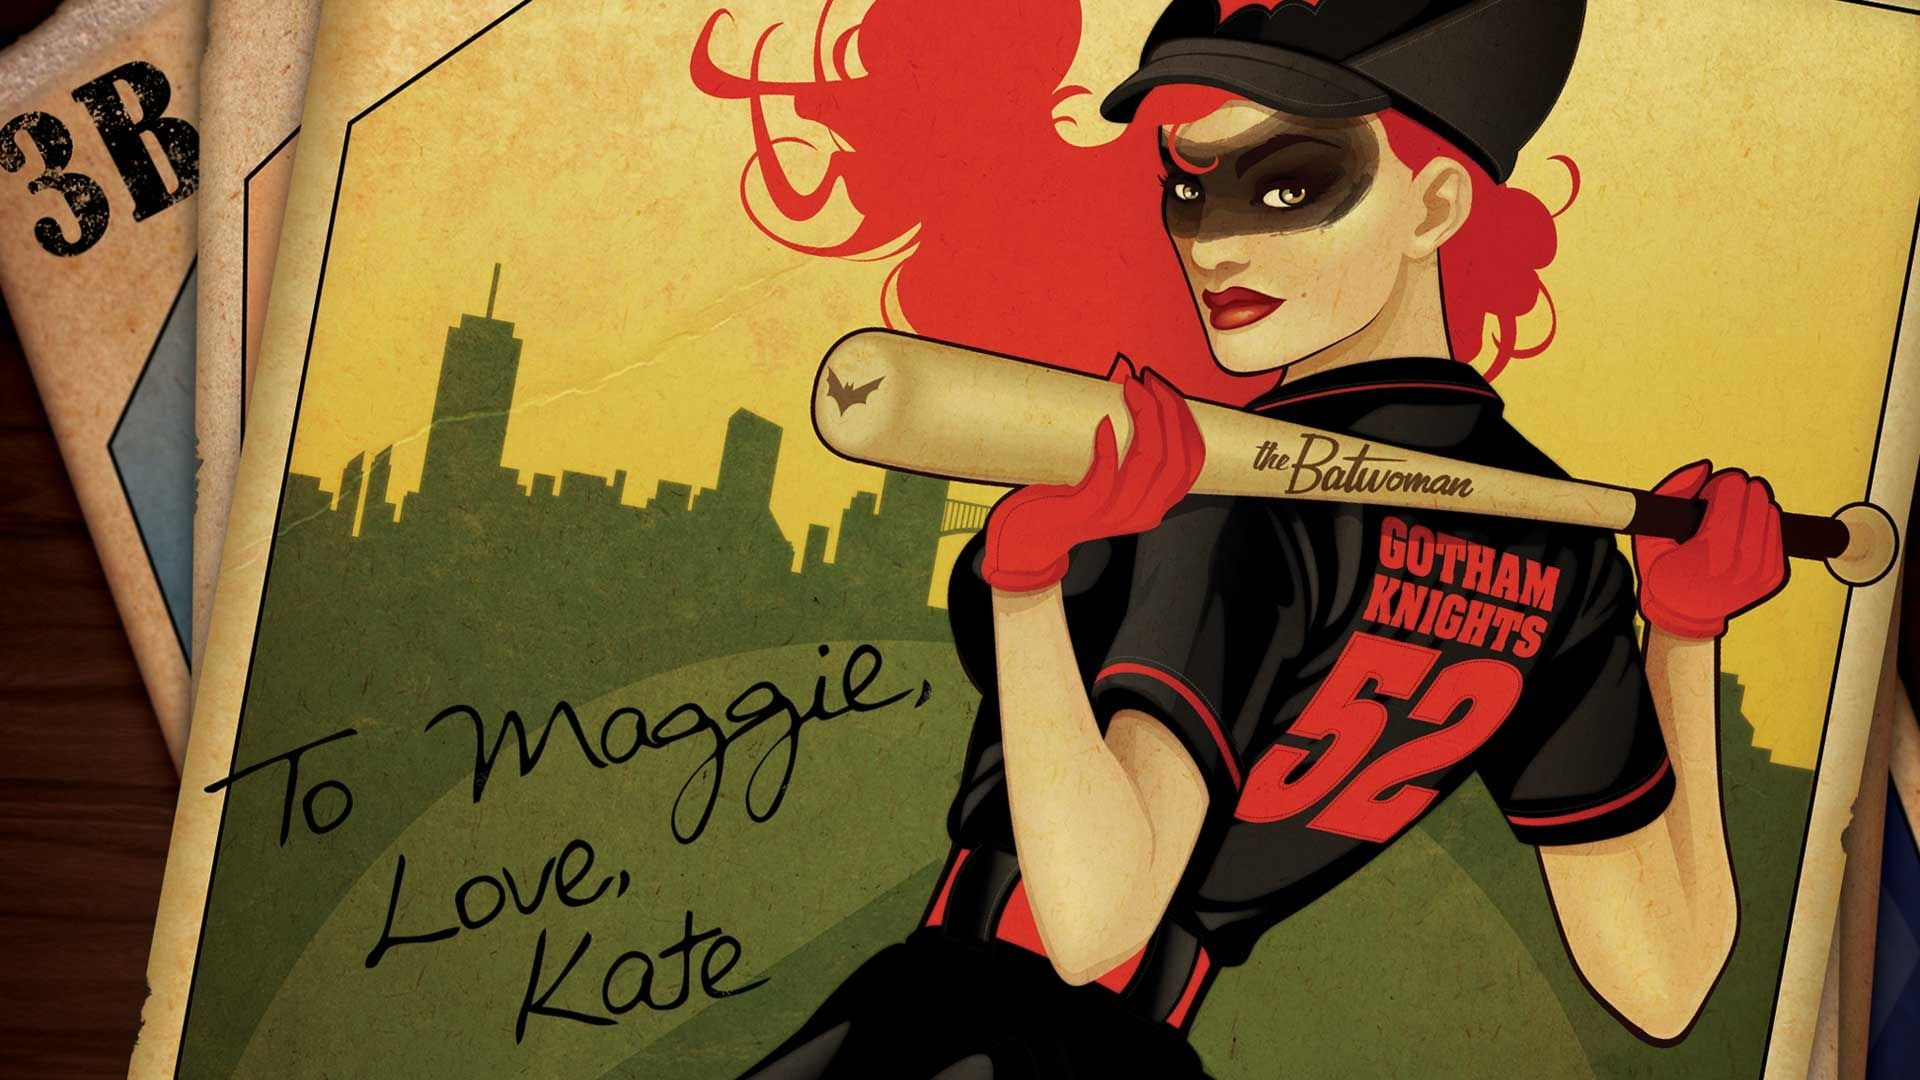 Res: 1920x1080, In DC Bombshells, Batwoman is a vigilante who fights crime in her baseball  uniform.